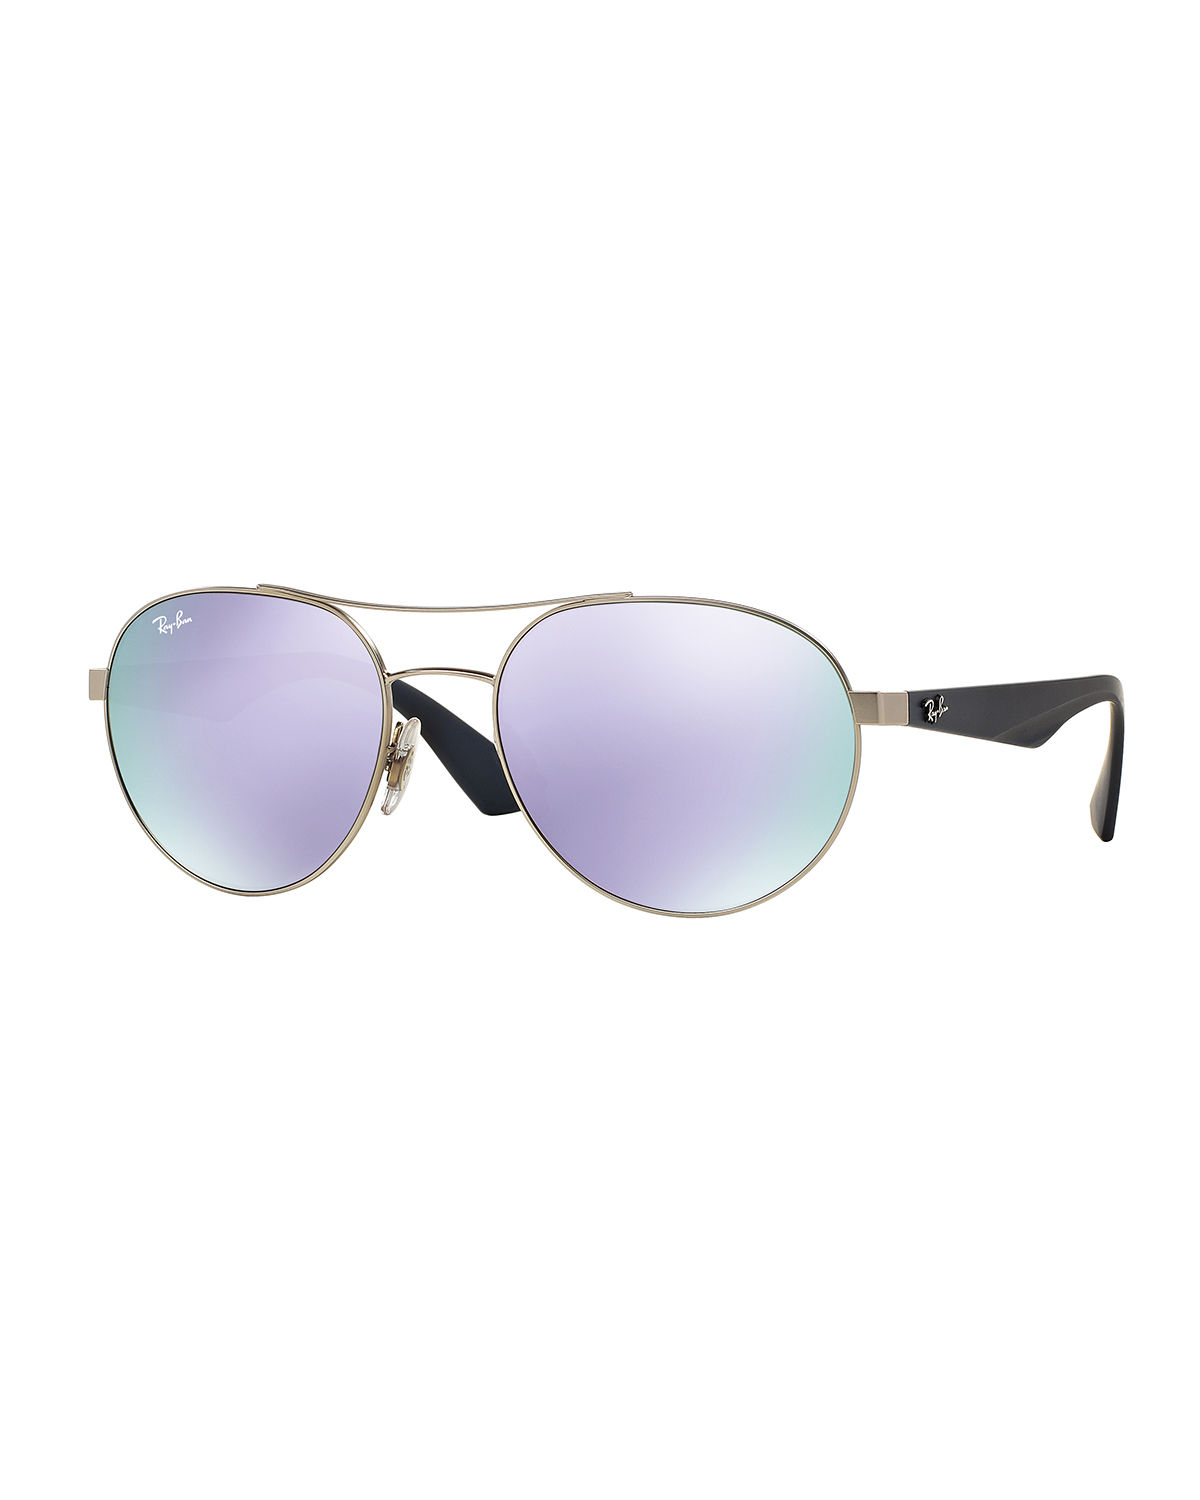 Round Iridescent Aviator Sunglasses